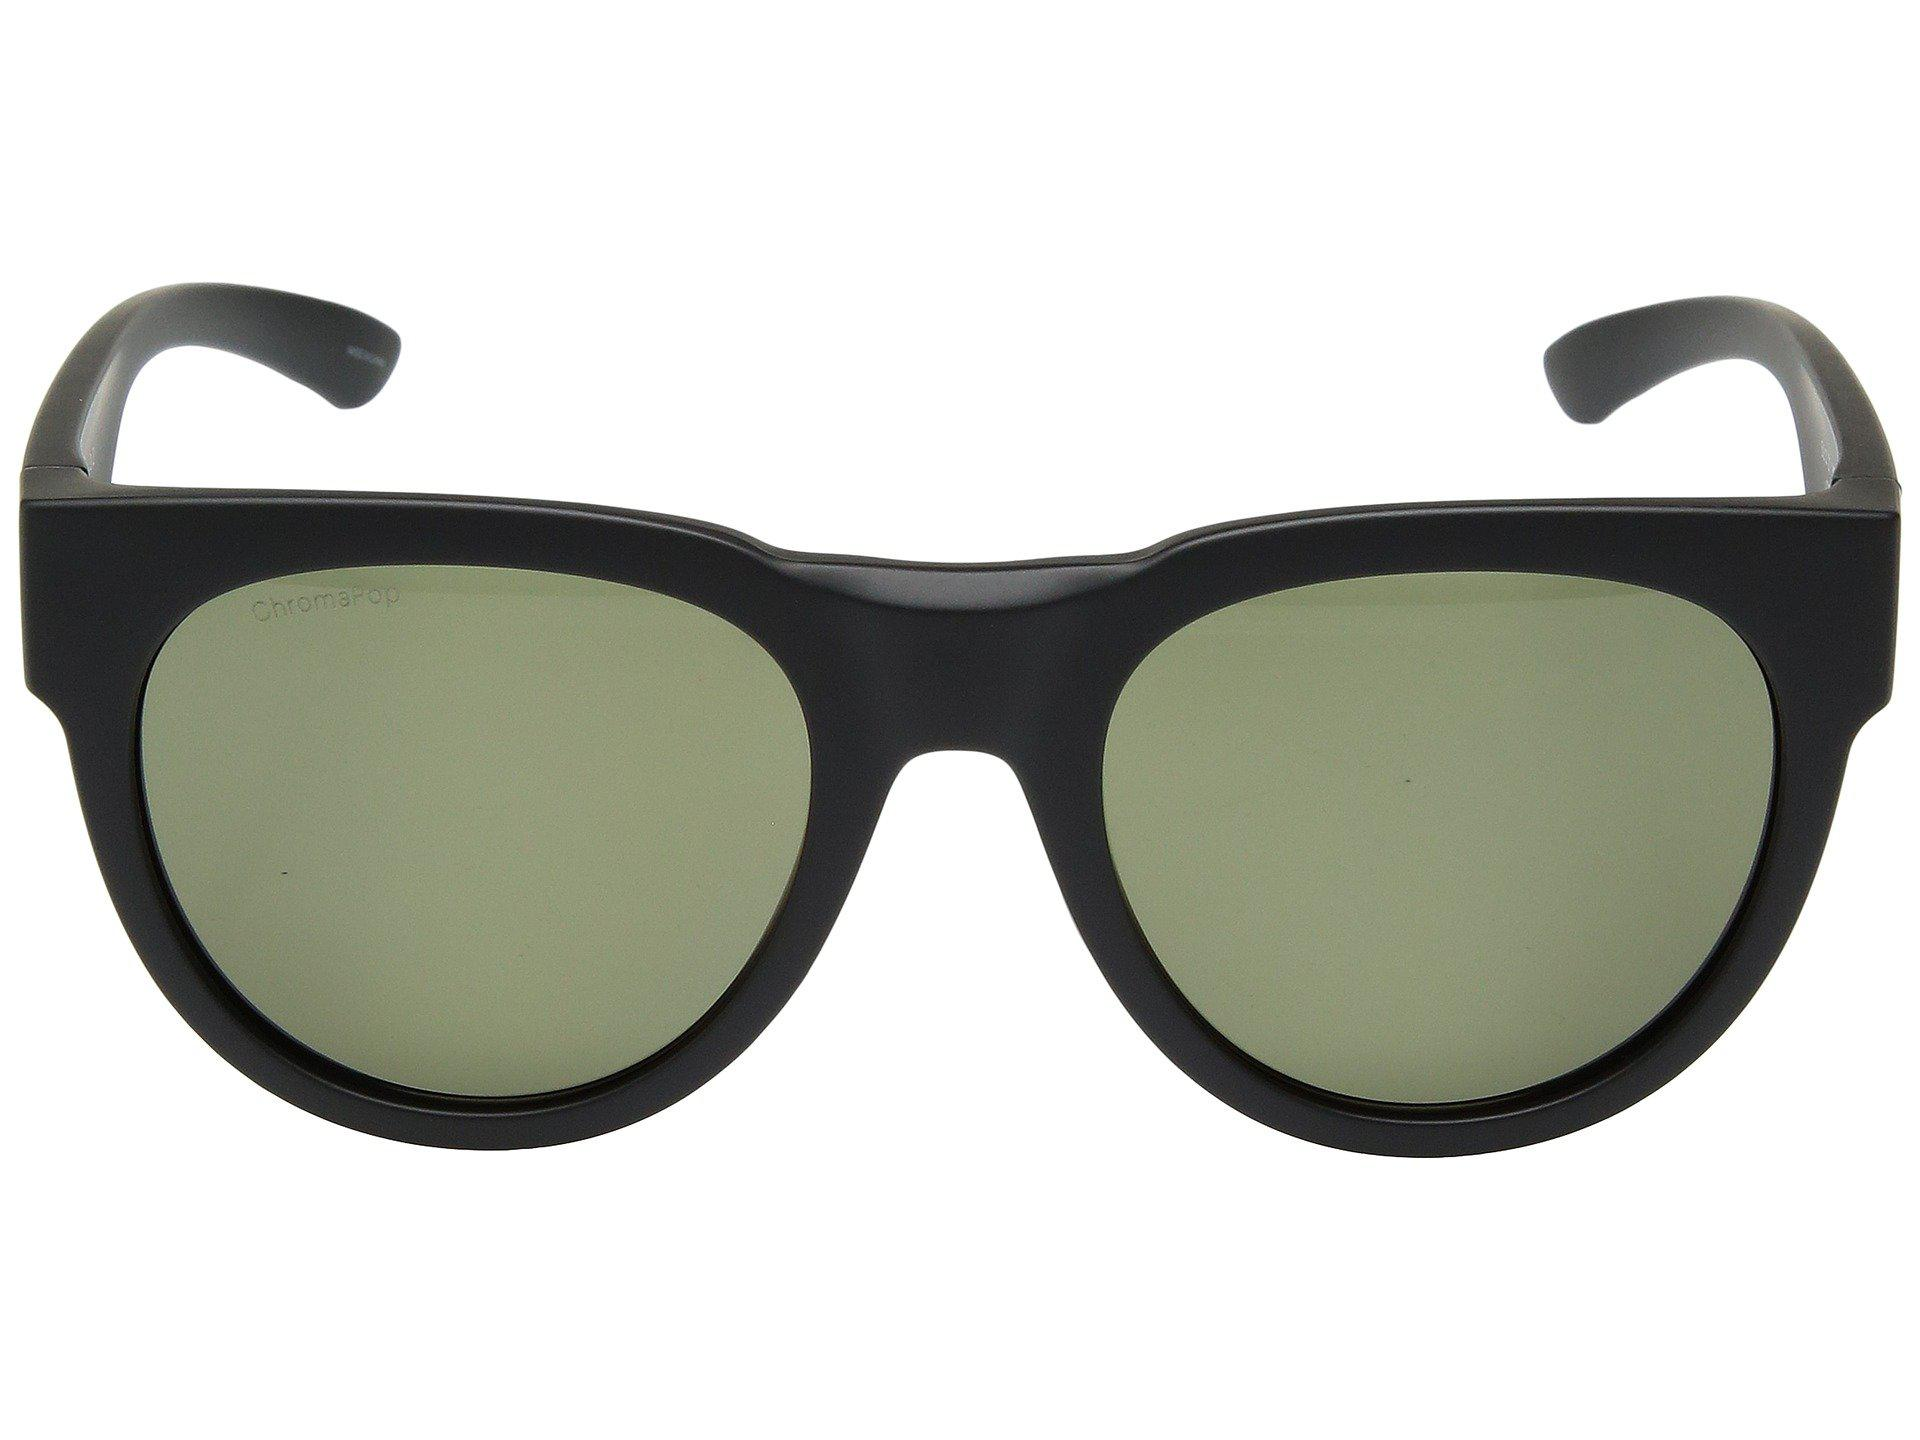 c408685cbb9 Smith Optics - Crusader (matte Black gray Green Chromapoptm Polarized Lens) Athletic  Performance. View fullscreen